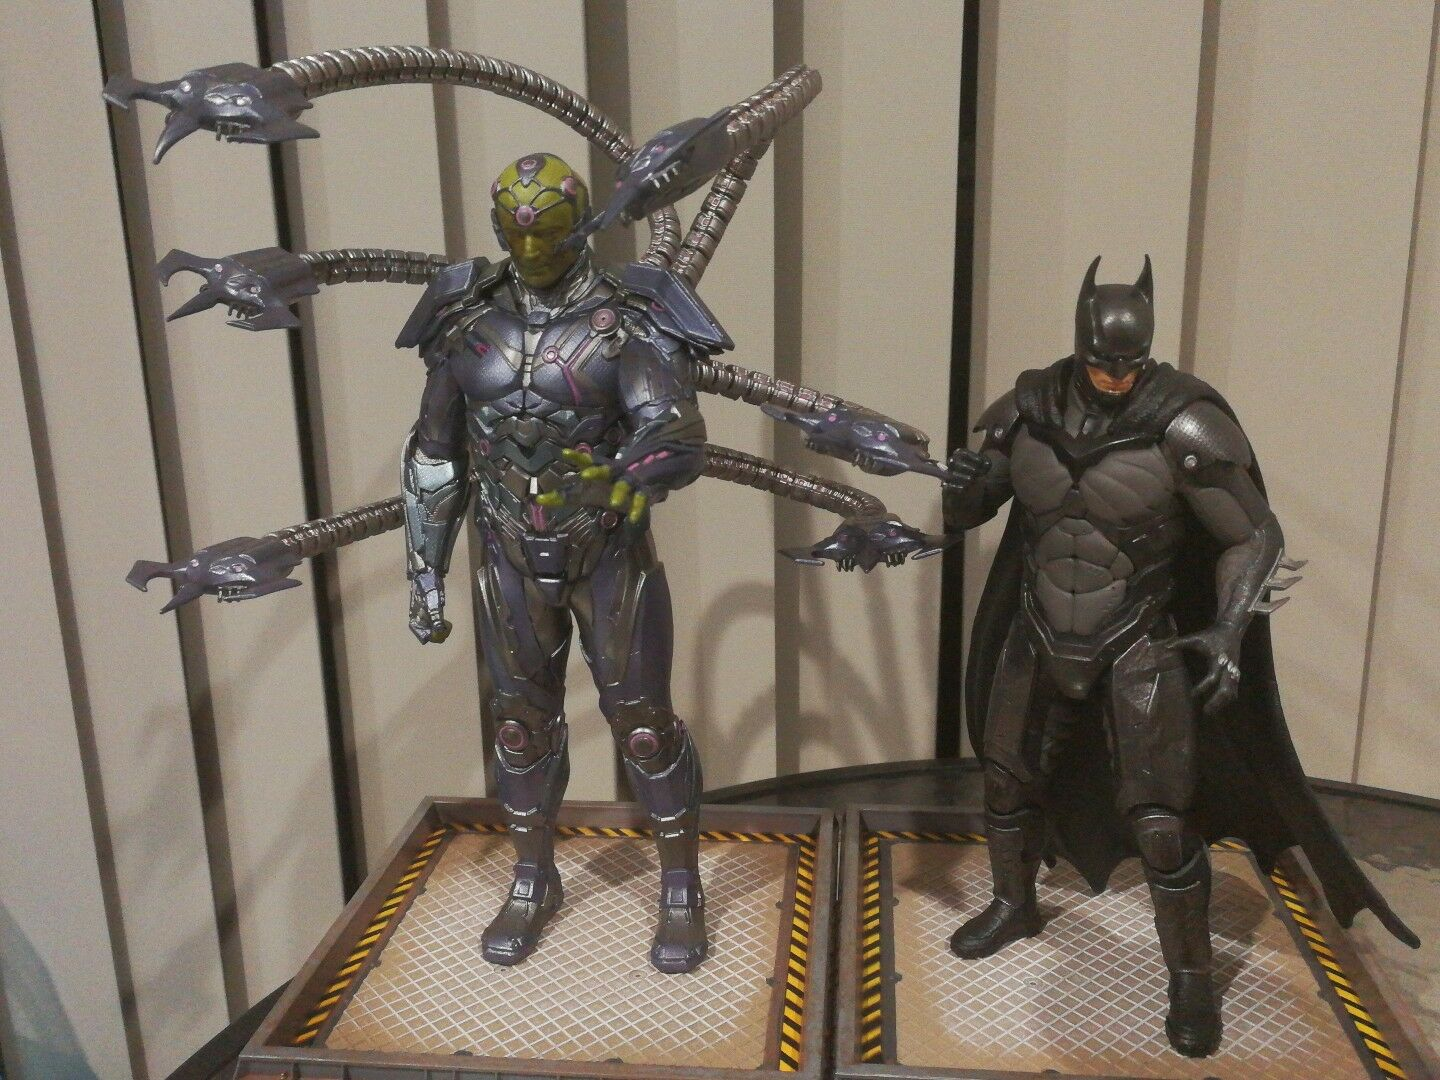 Dc Comics Injustice 2 Statues The Versus Collection Batman and Brainiac set